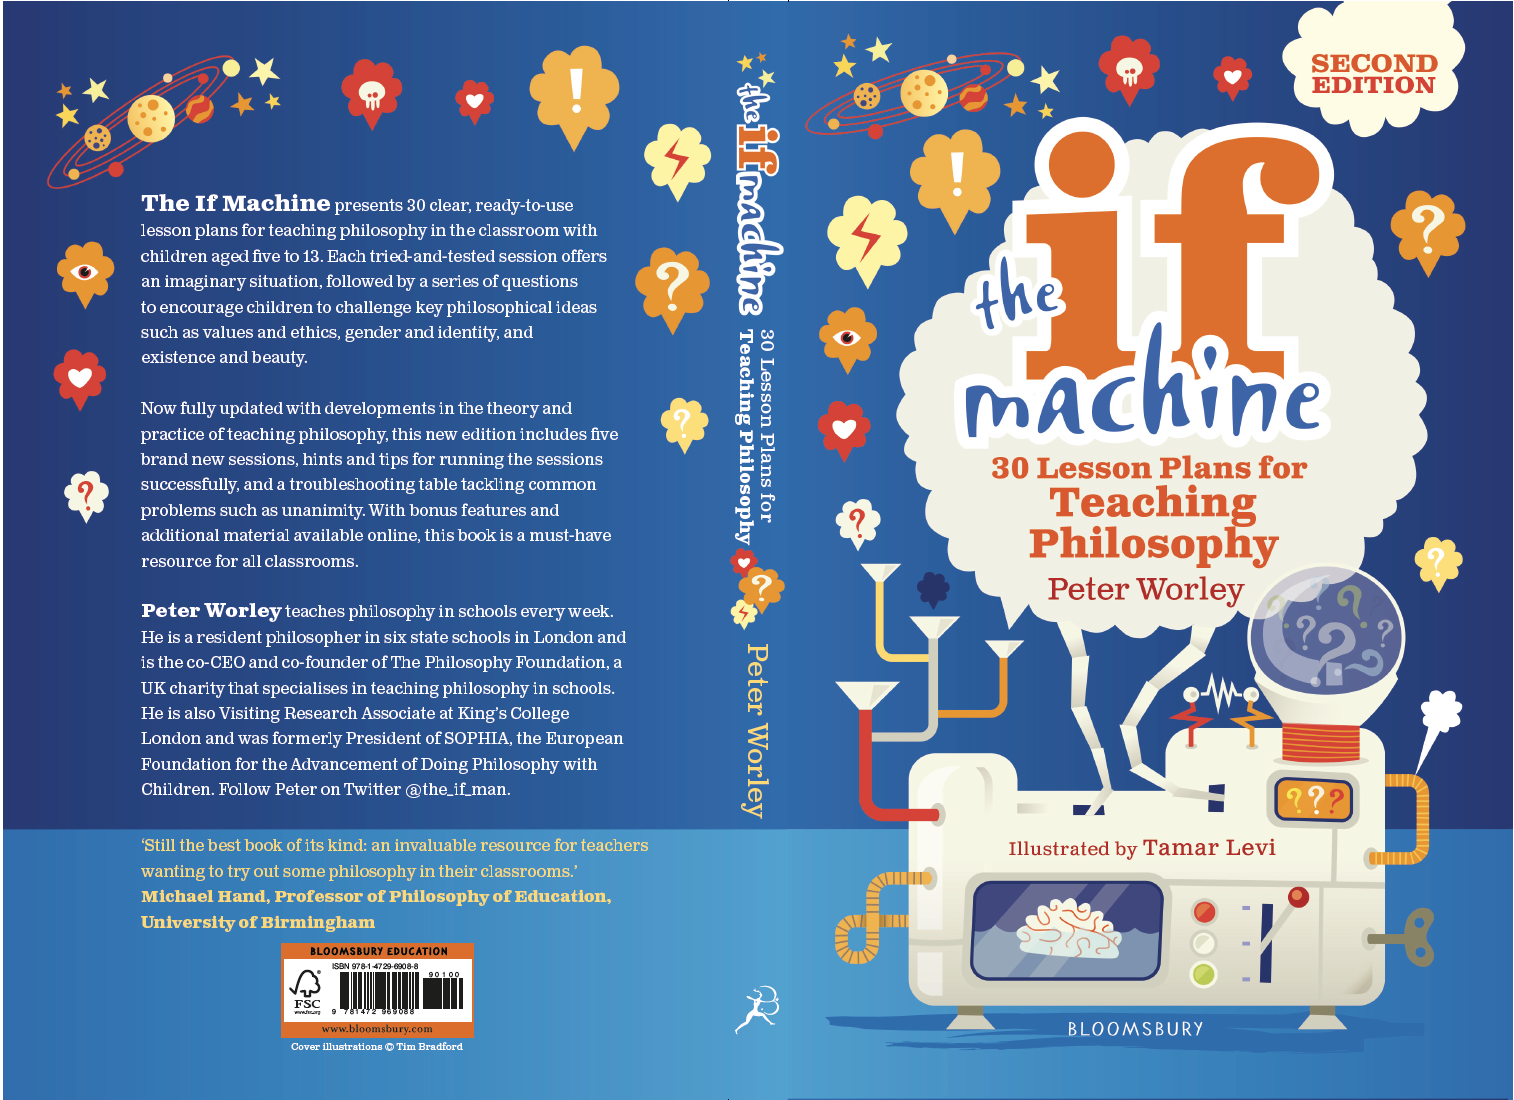 If Machine 2nd Edition